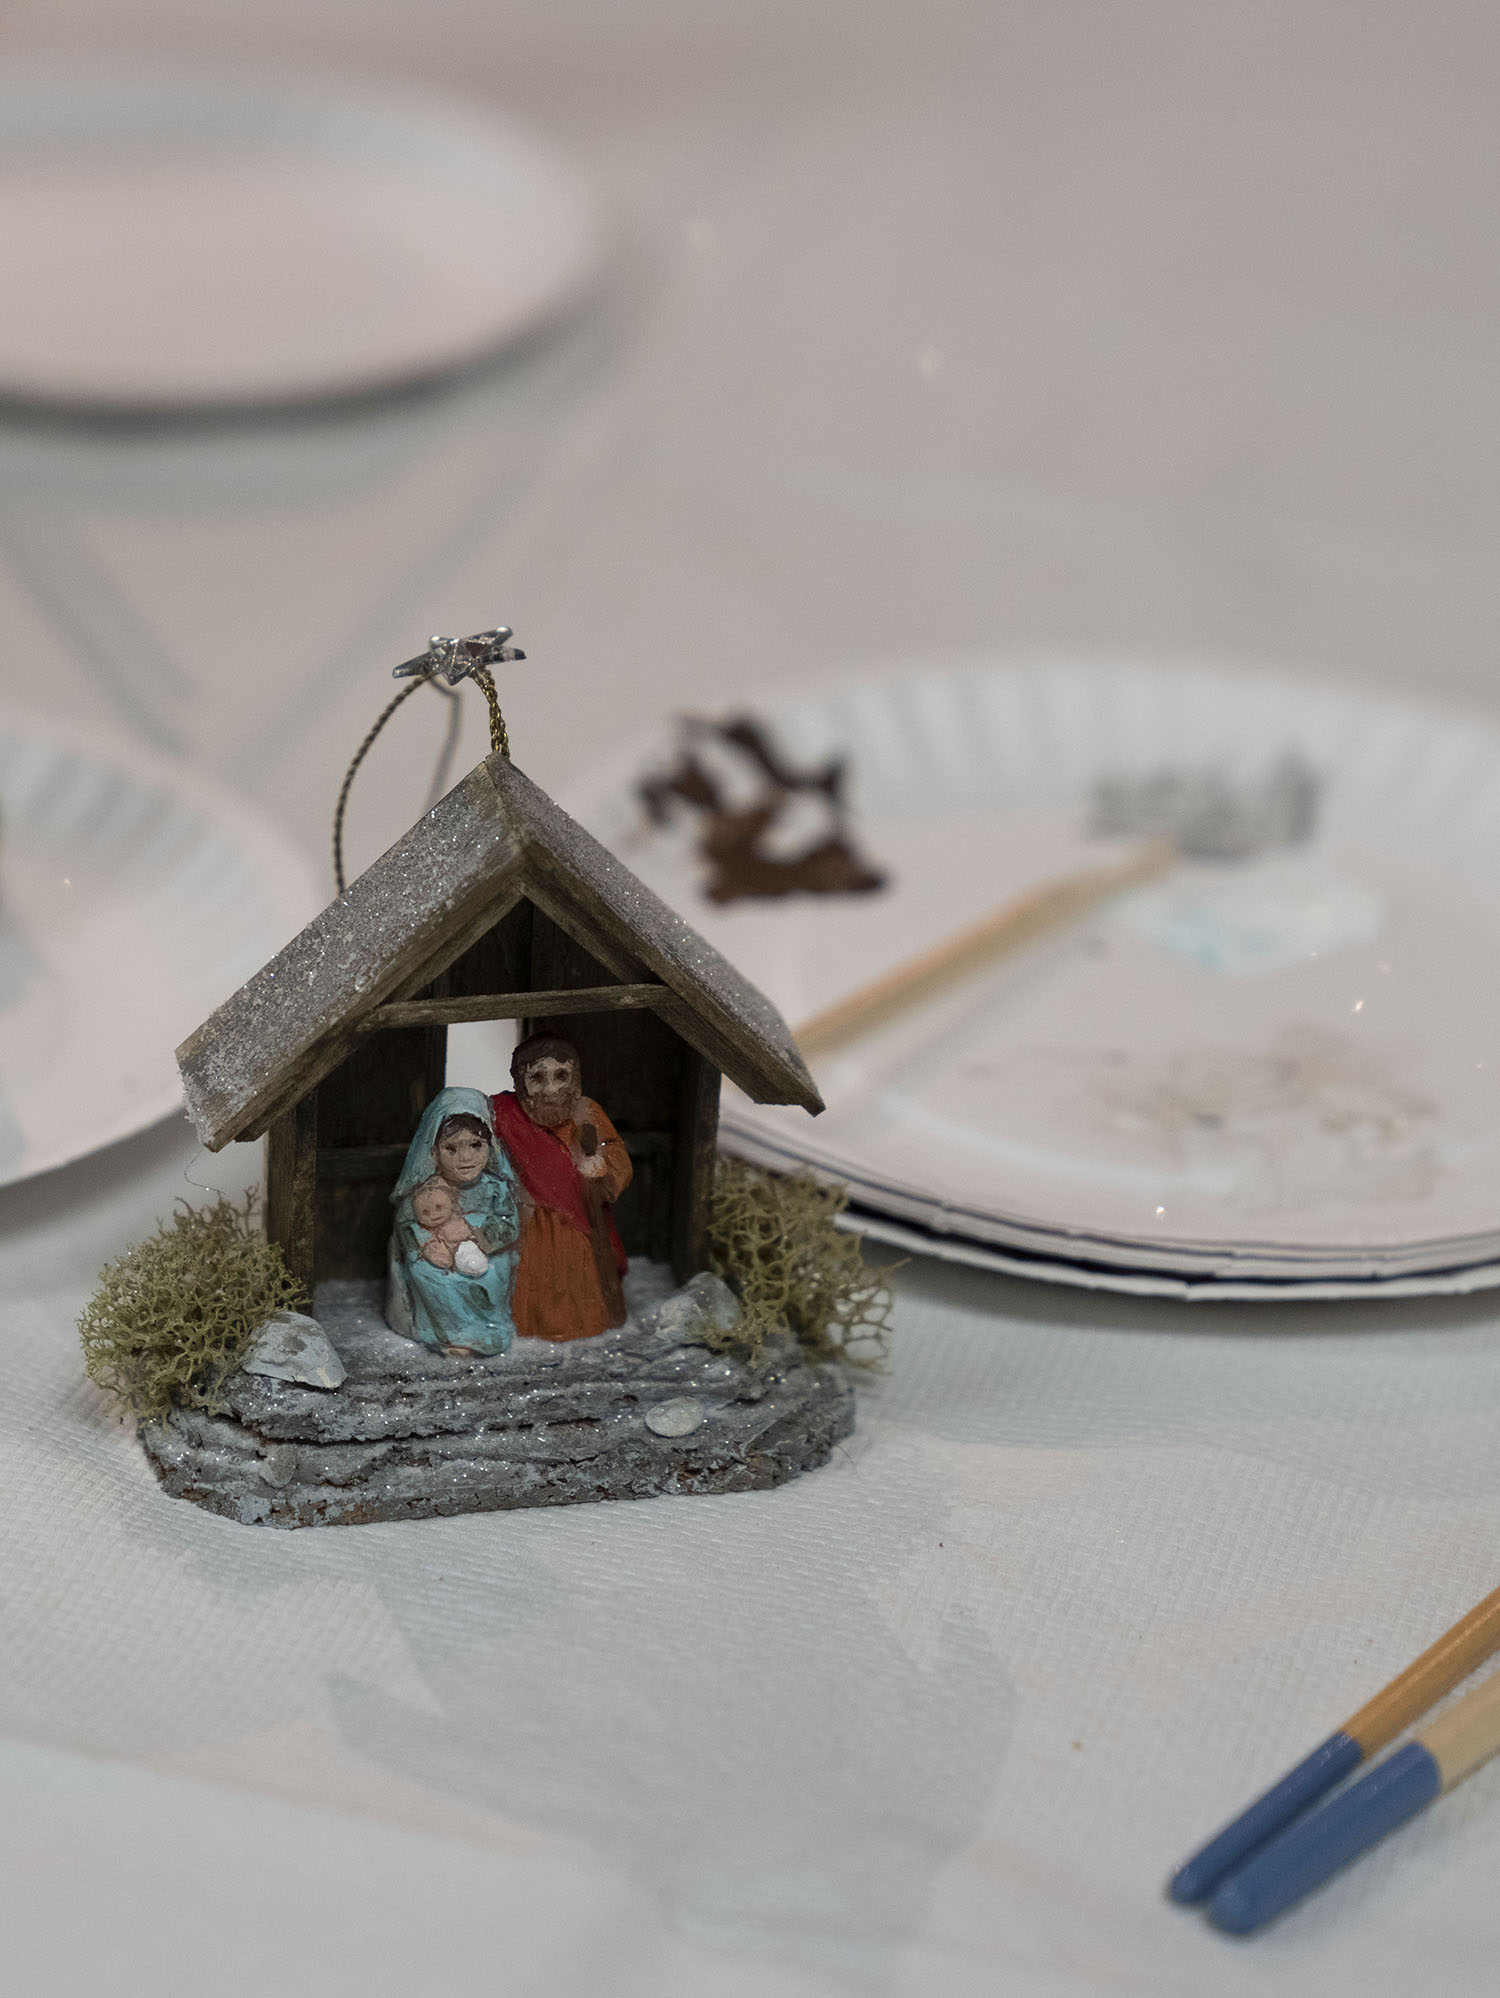 Figure 20: A Nativity project completed by one of the workshop participants.